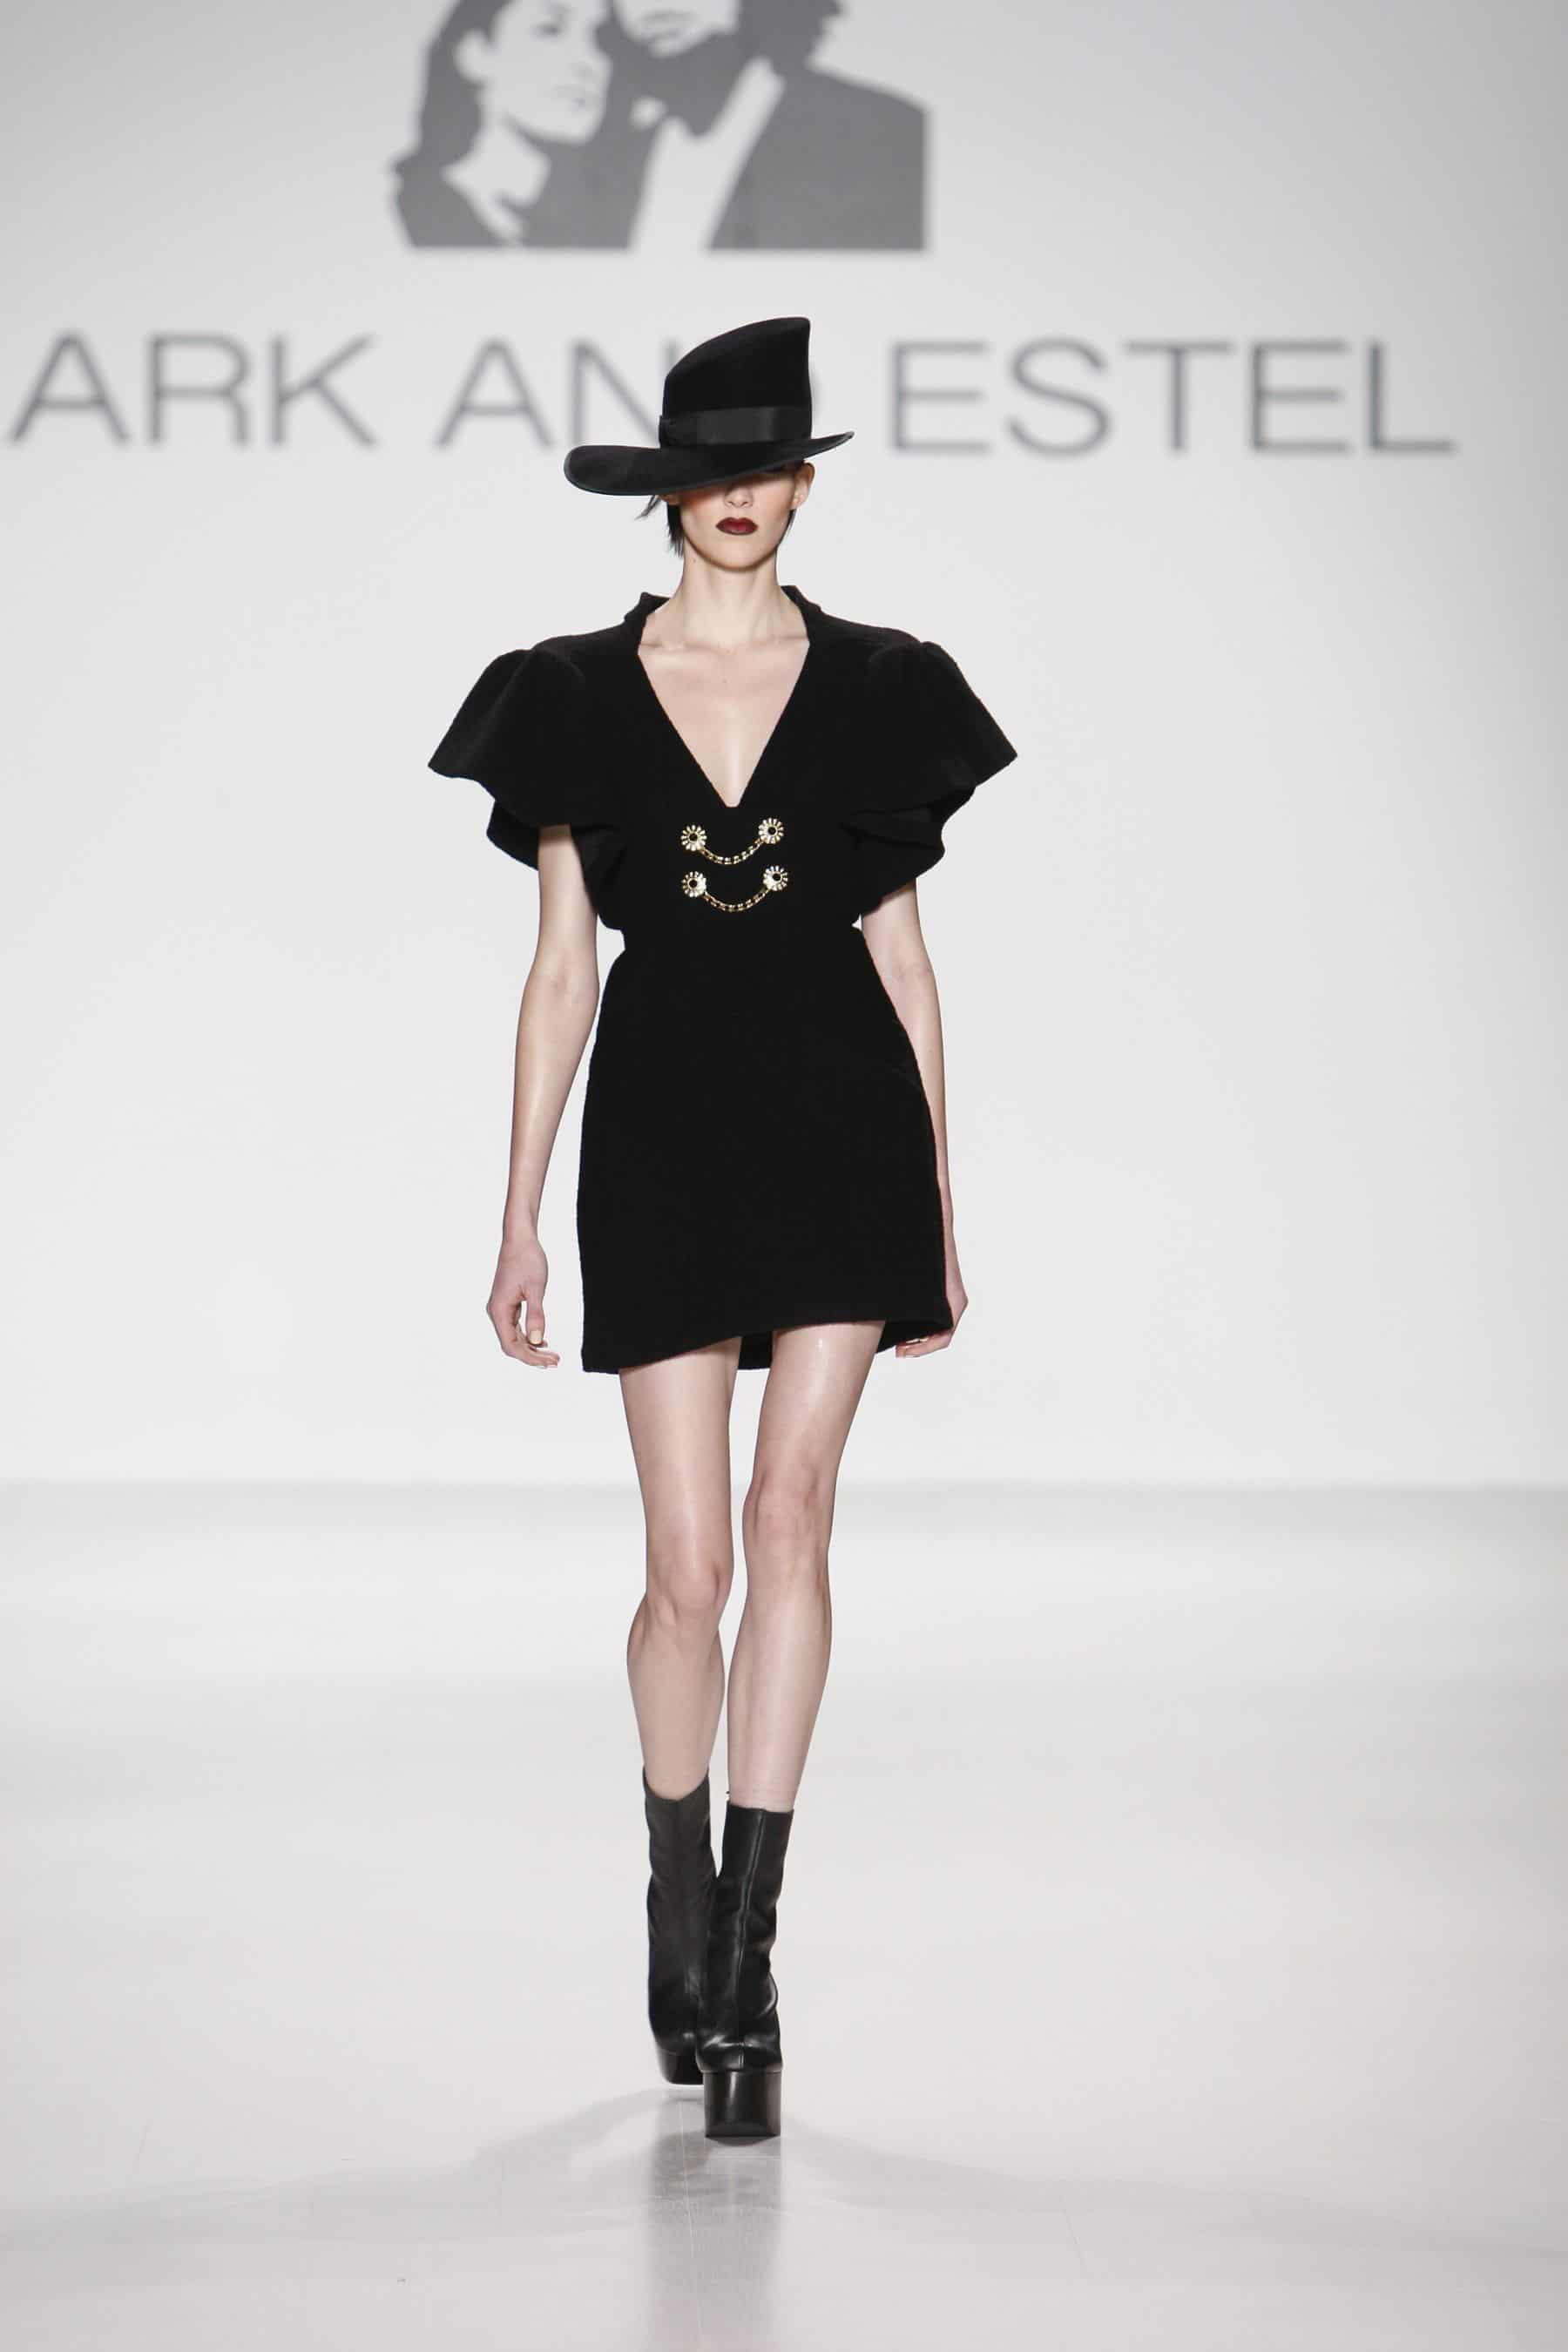 Fashion World: Mark and Estel